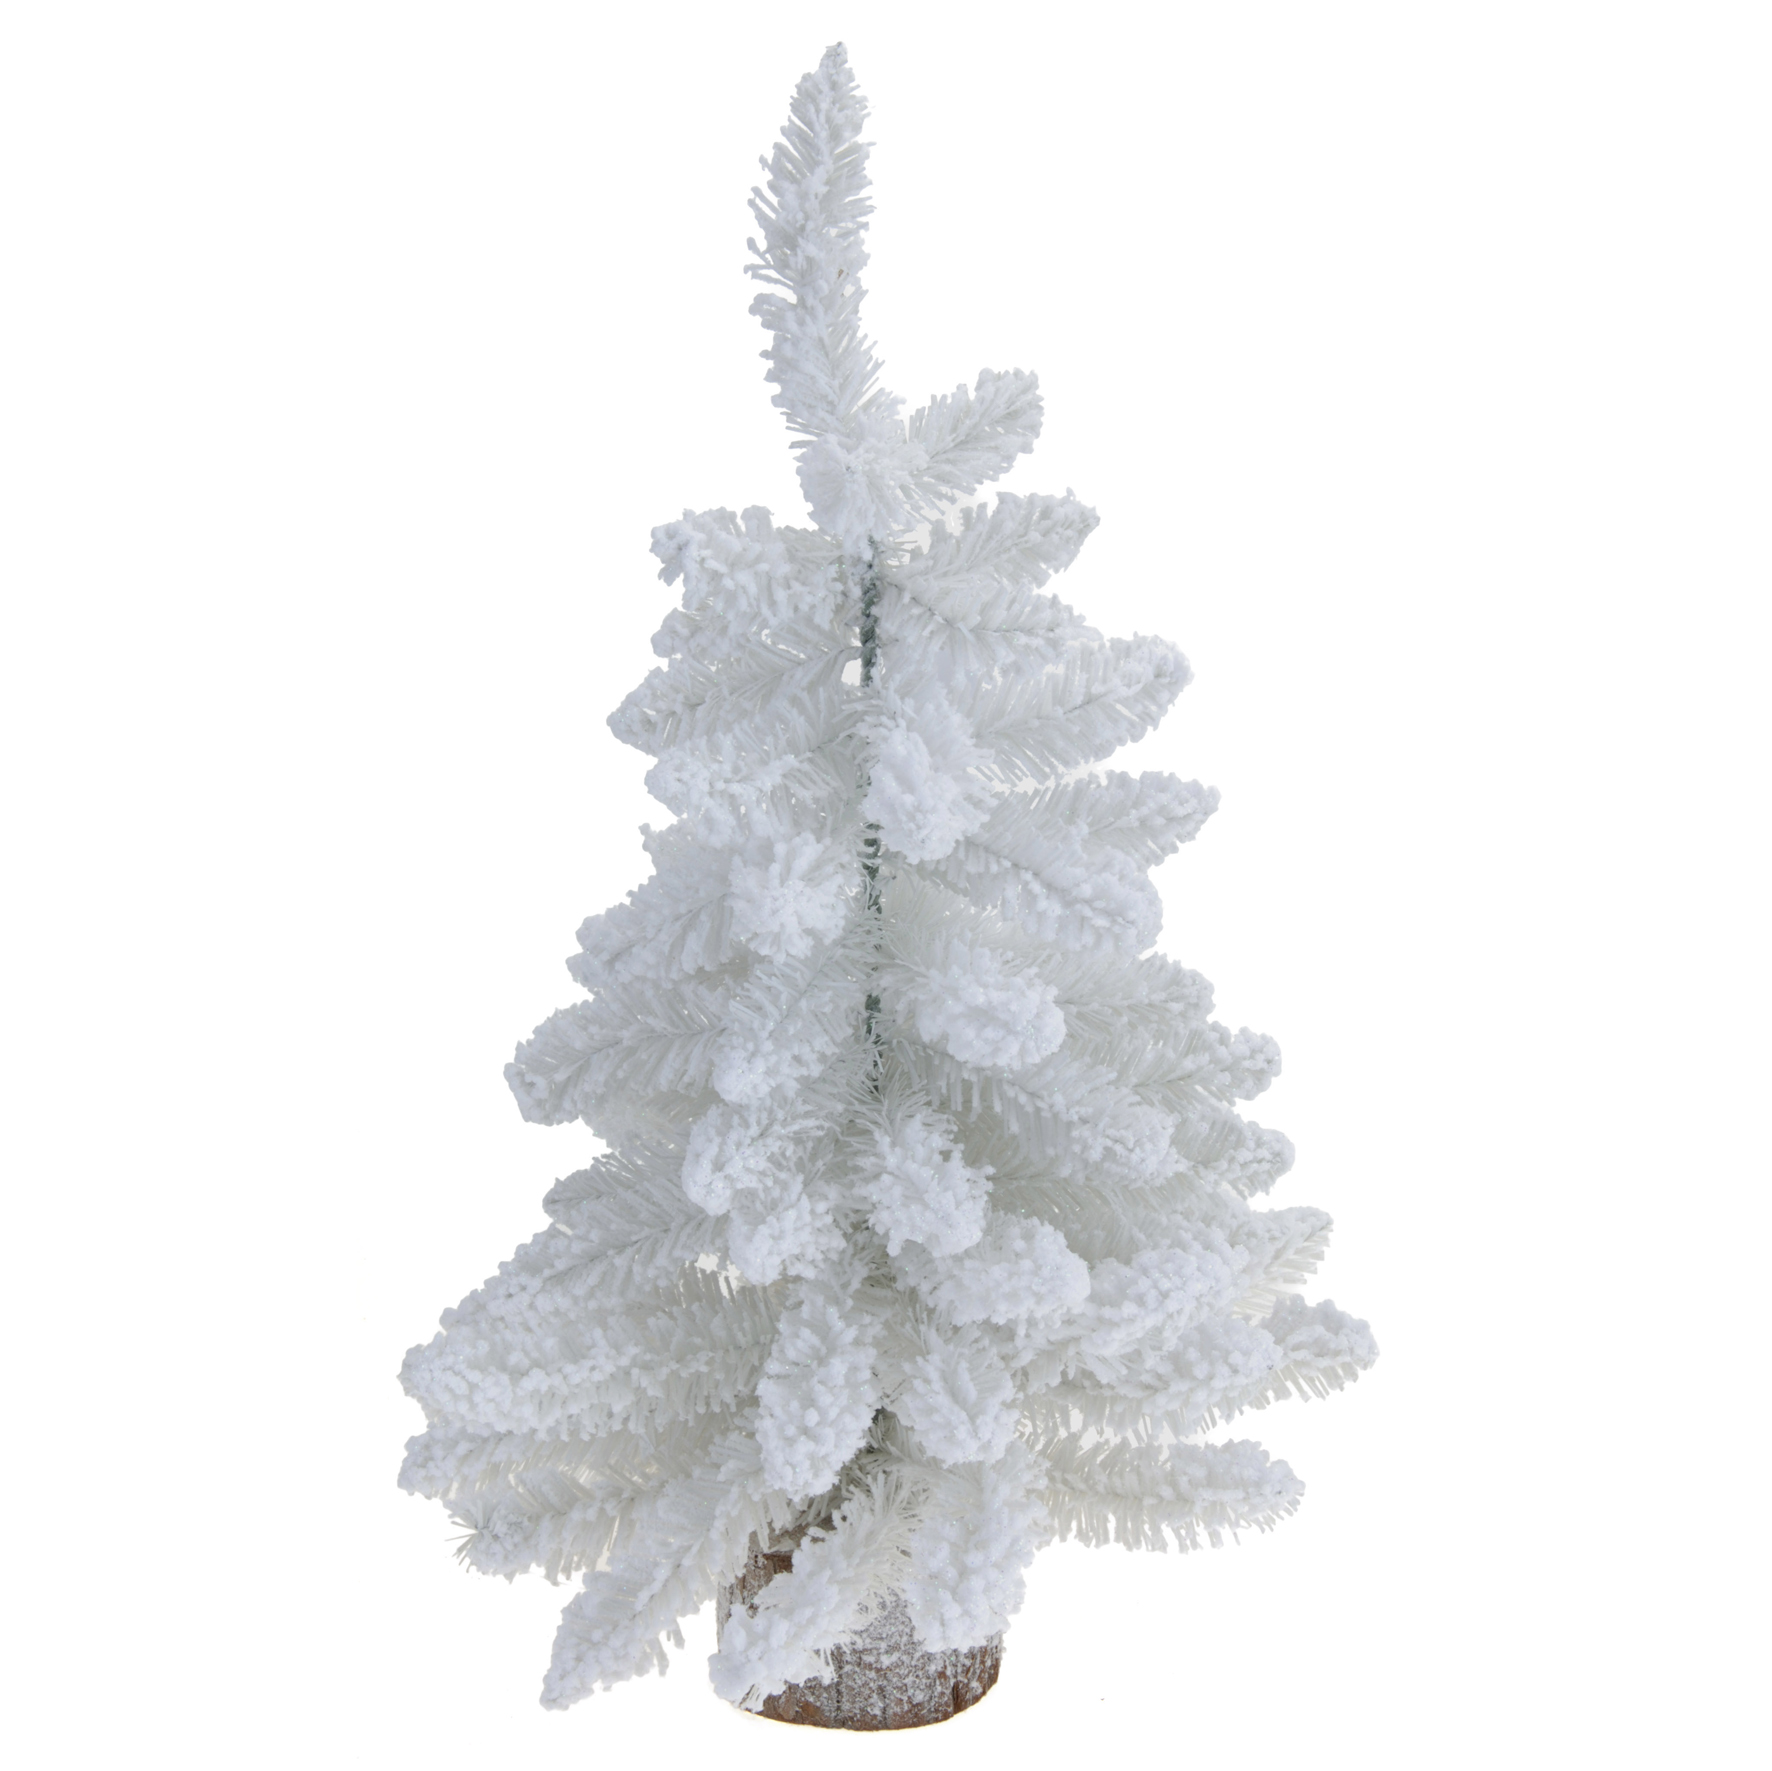 k nstlicher weihnachtsbaum mit schnee deko ca 60 cm christbaum wei ebay. Black Bedroom Furniture Sets. Home Design Ideas